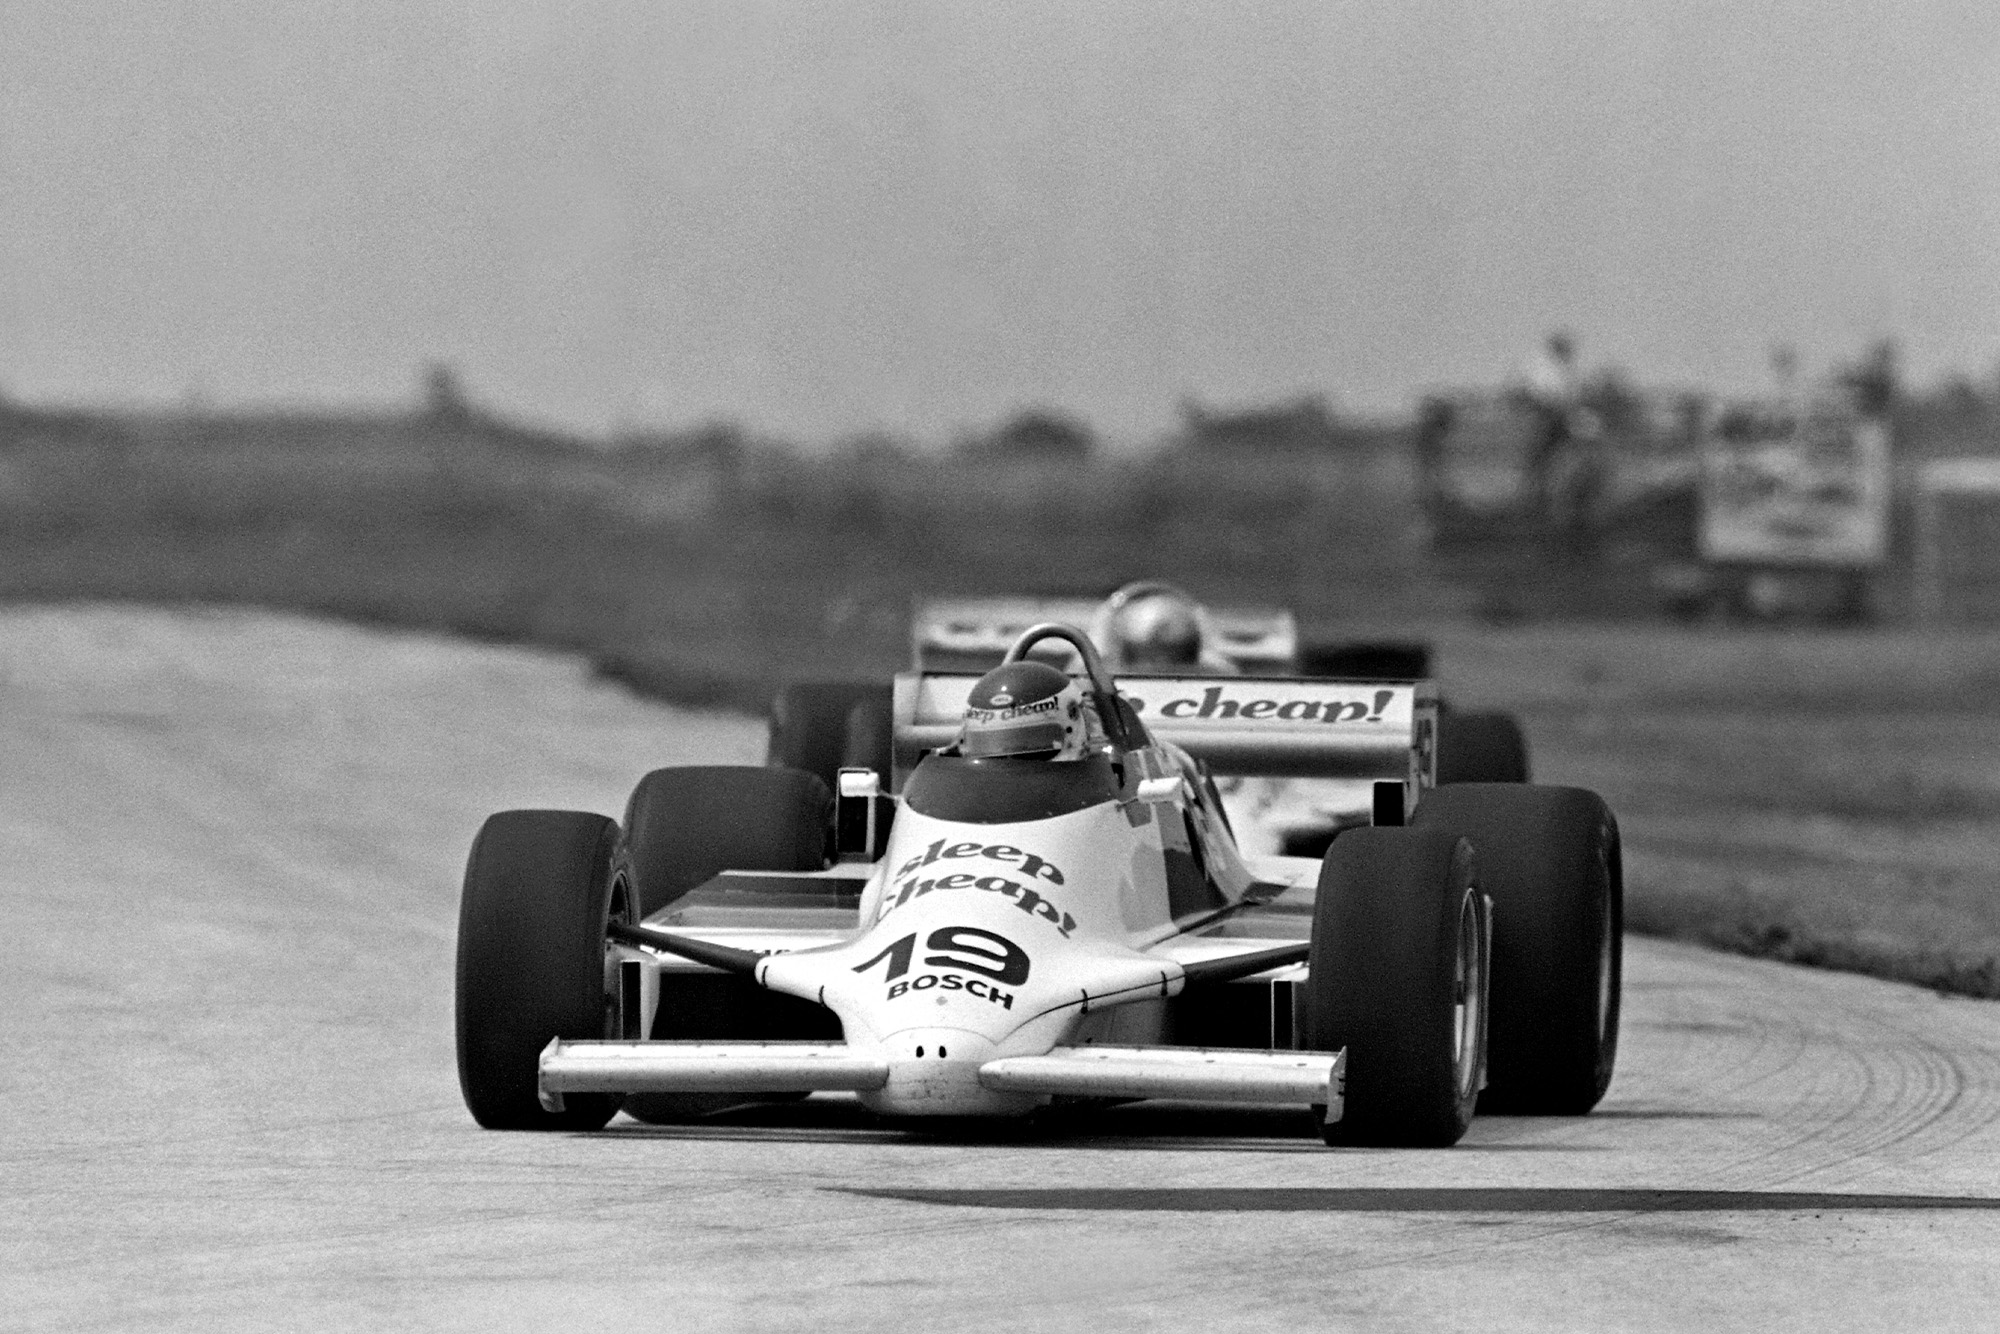 Bobby Rahal on his way to victory at Cleveland in 1982